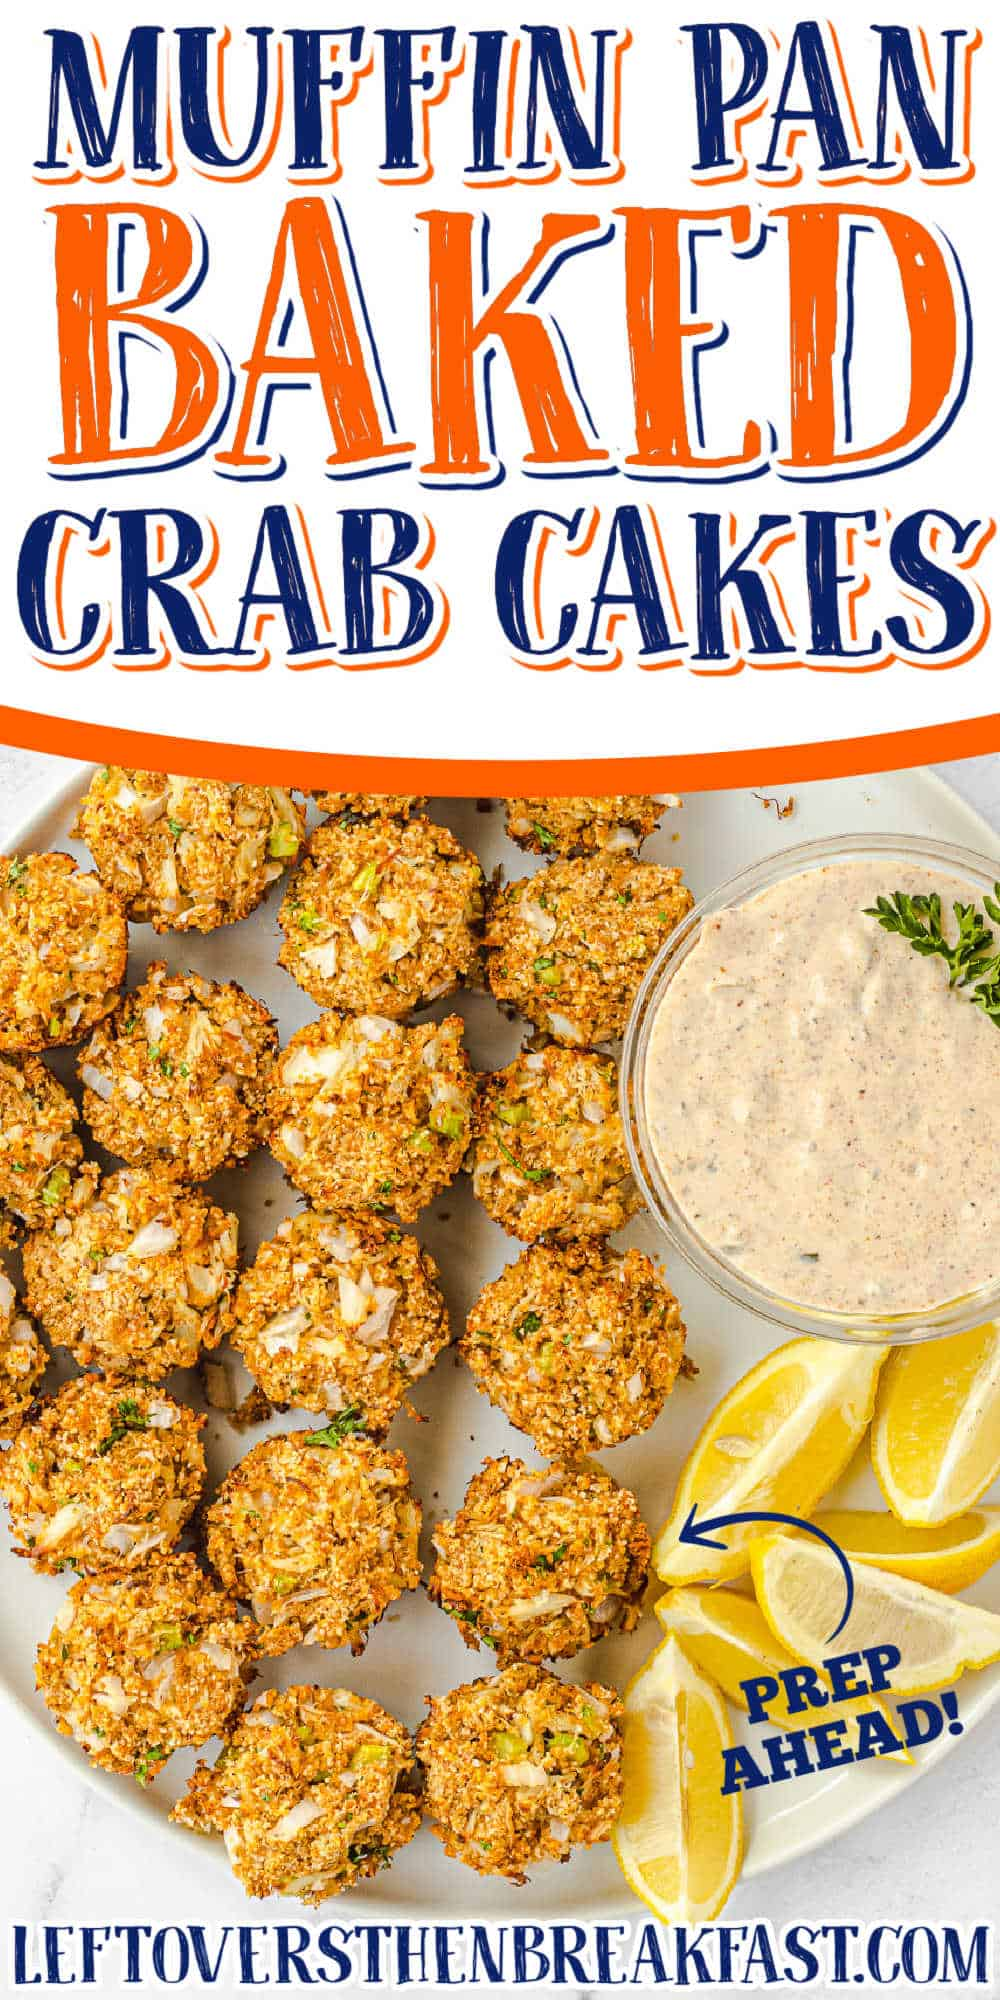 """crab patties with text """"muffin pan baked crab cakes"""""""